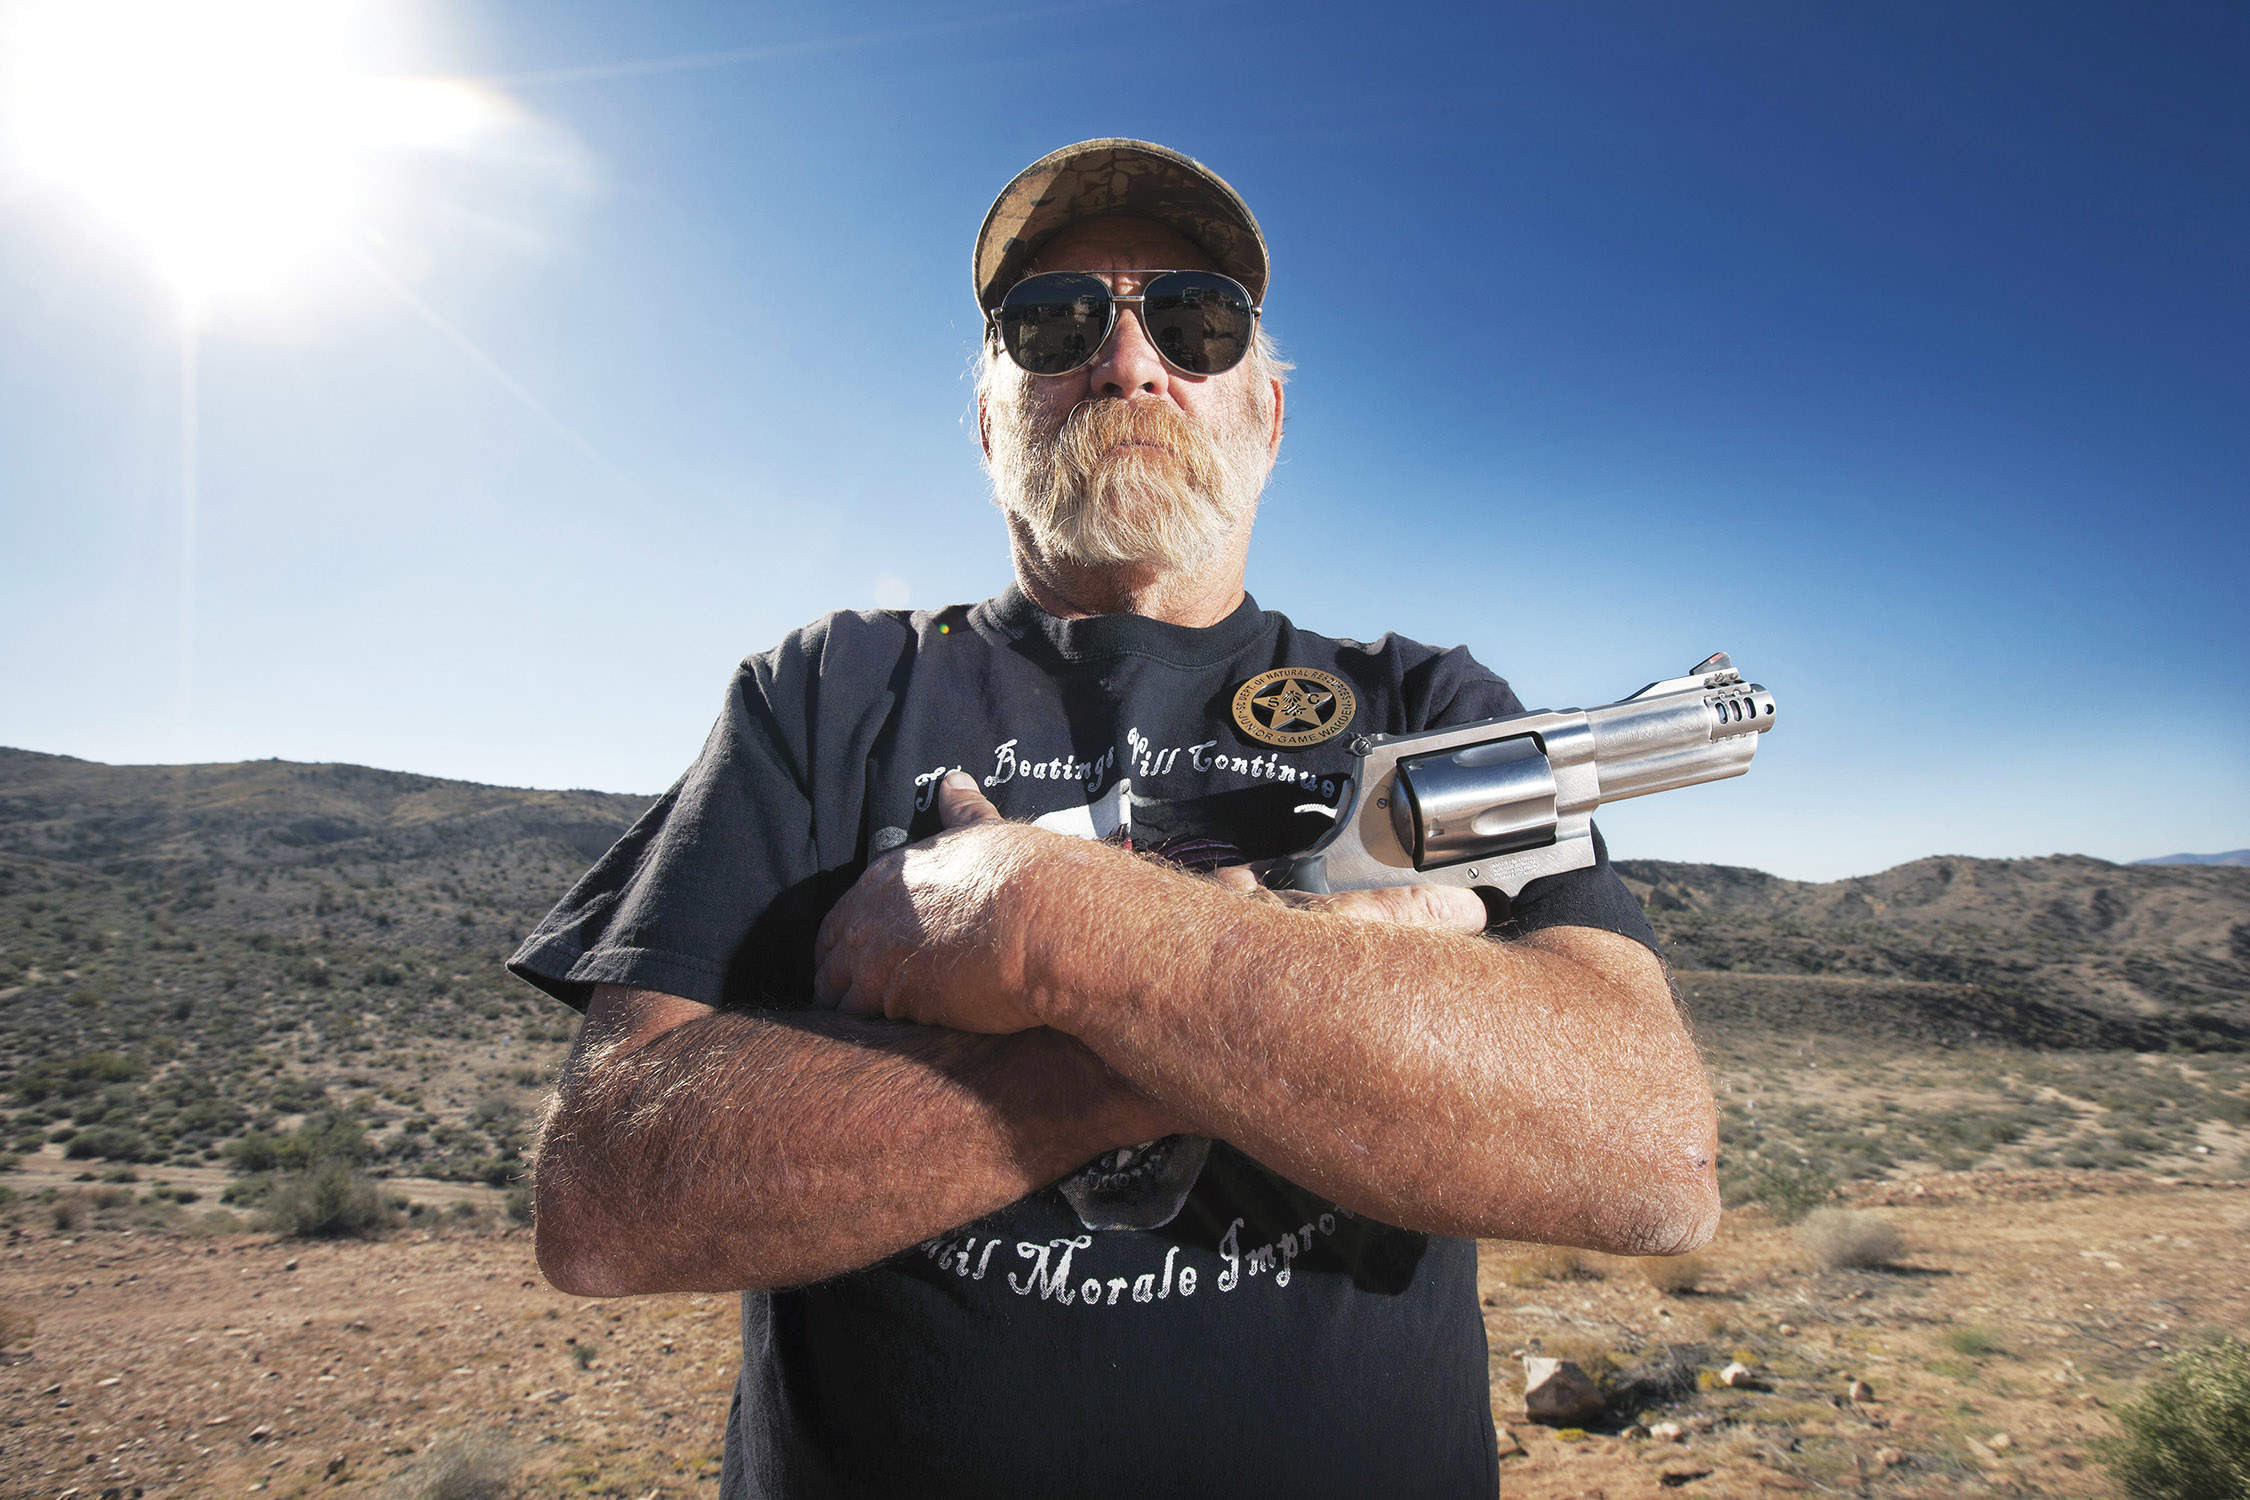 Stars, stripes and bulletholes: America and the brutal business of its guns